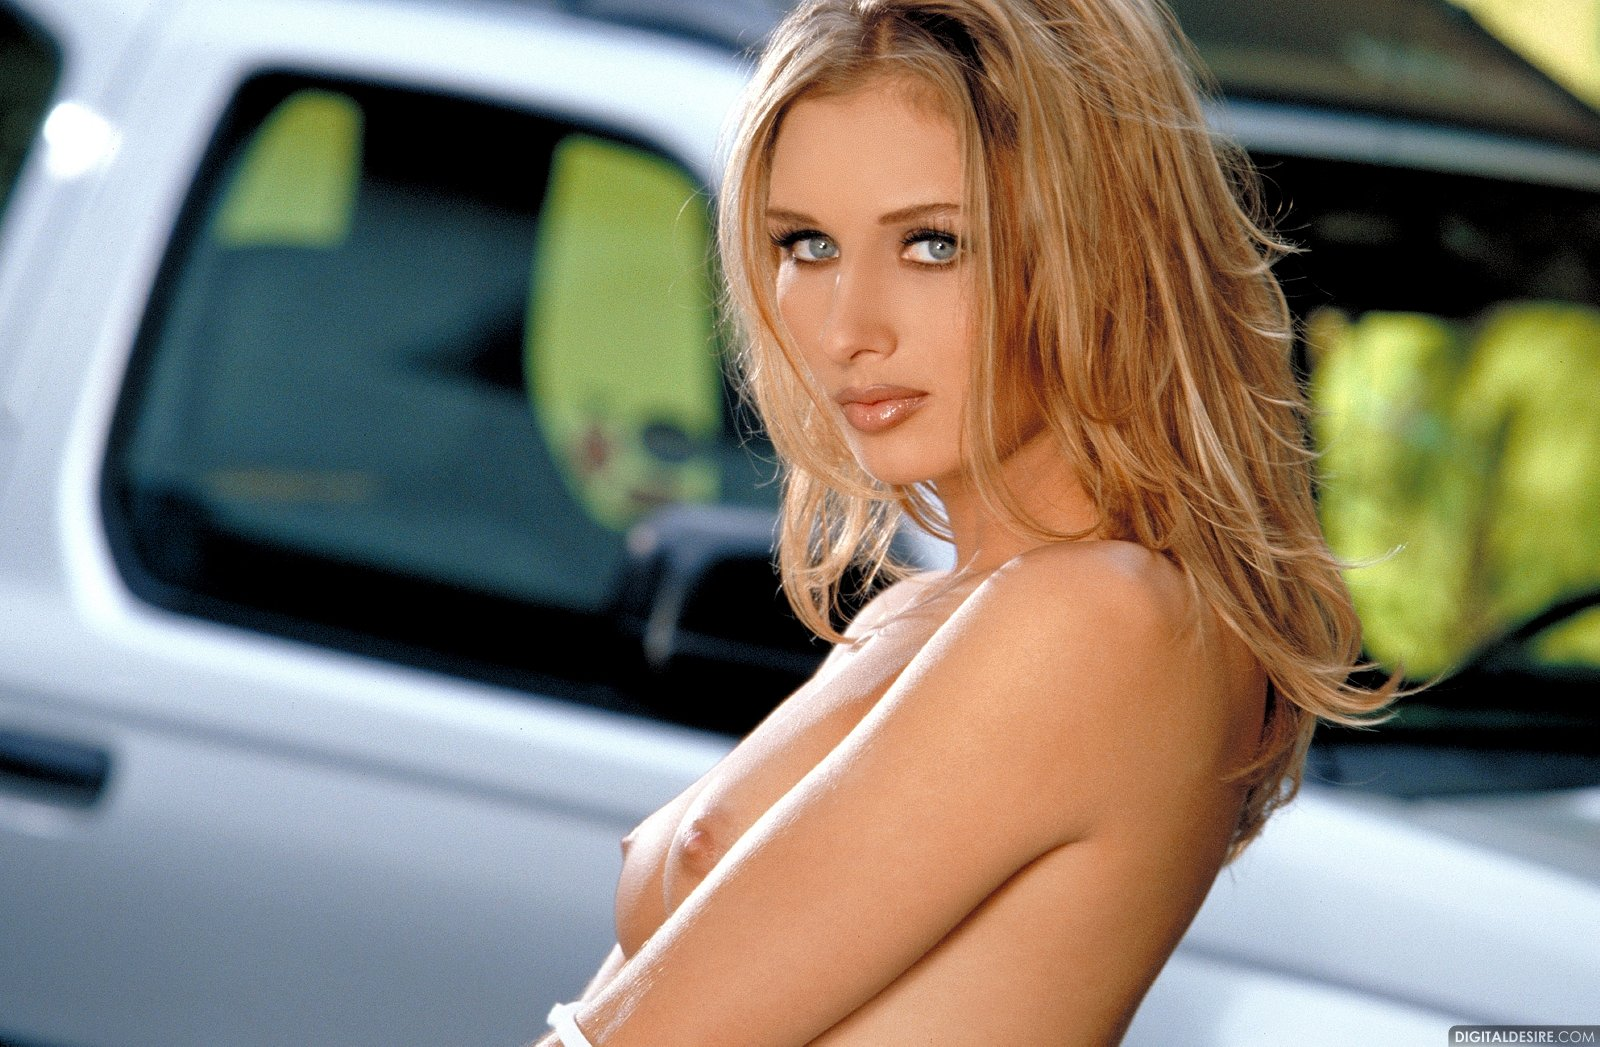 Bedroom naked babe on suv